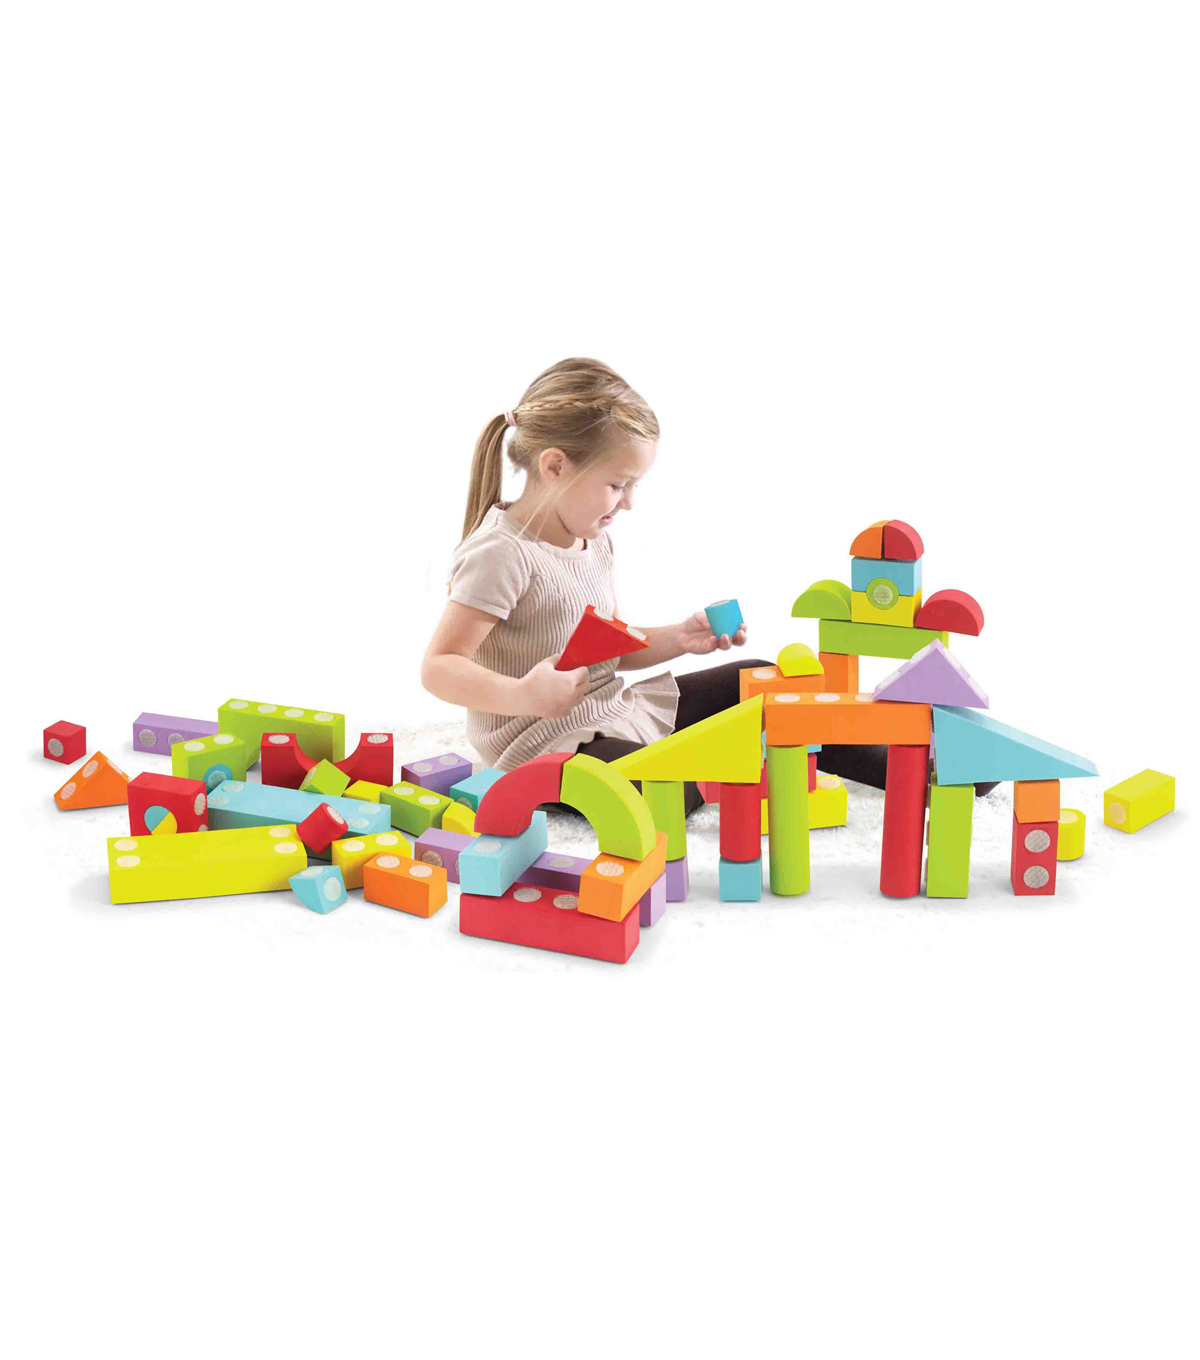 Velcro Brand Blocks 60 Piece Set